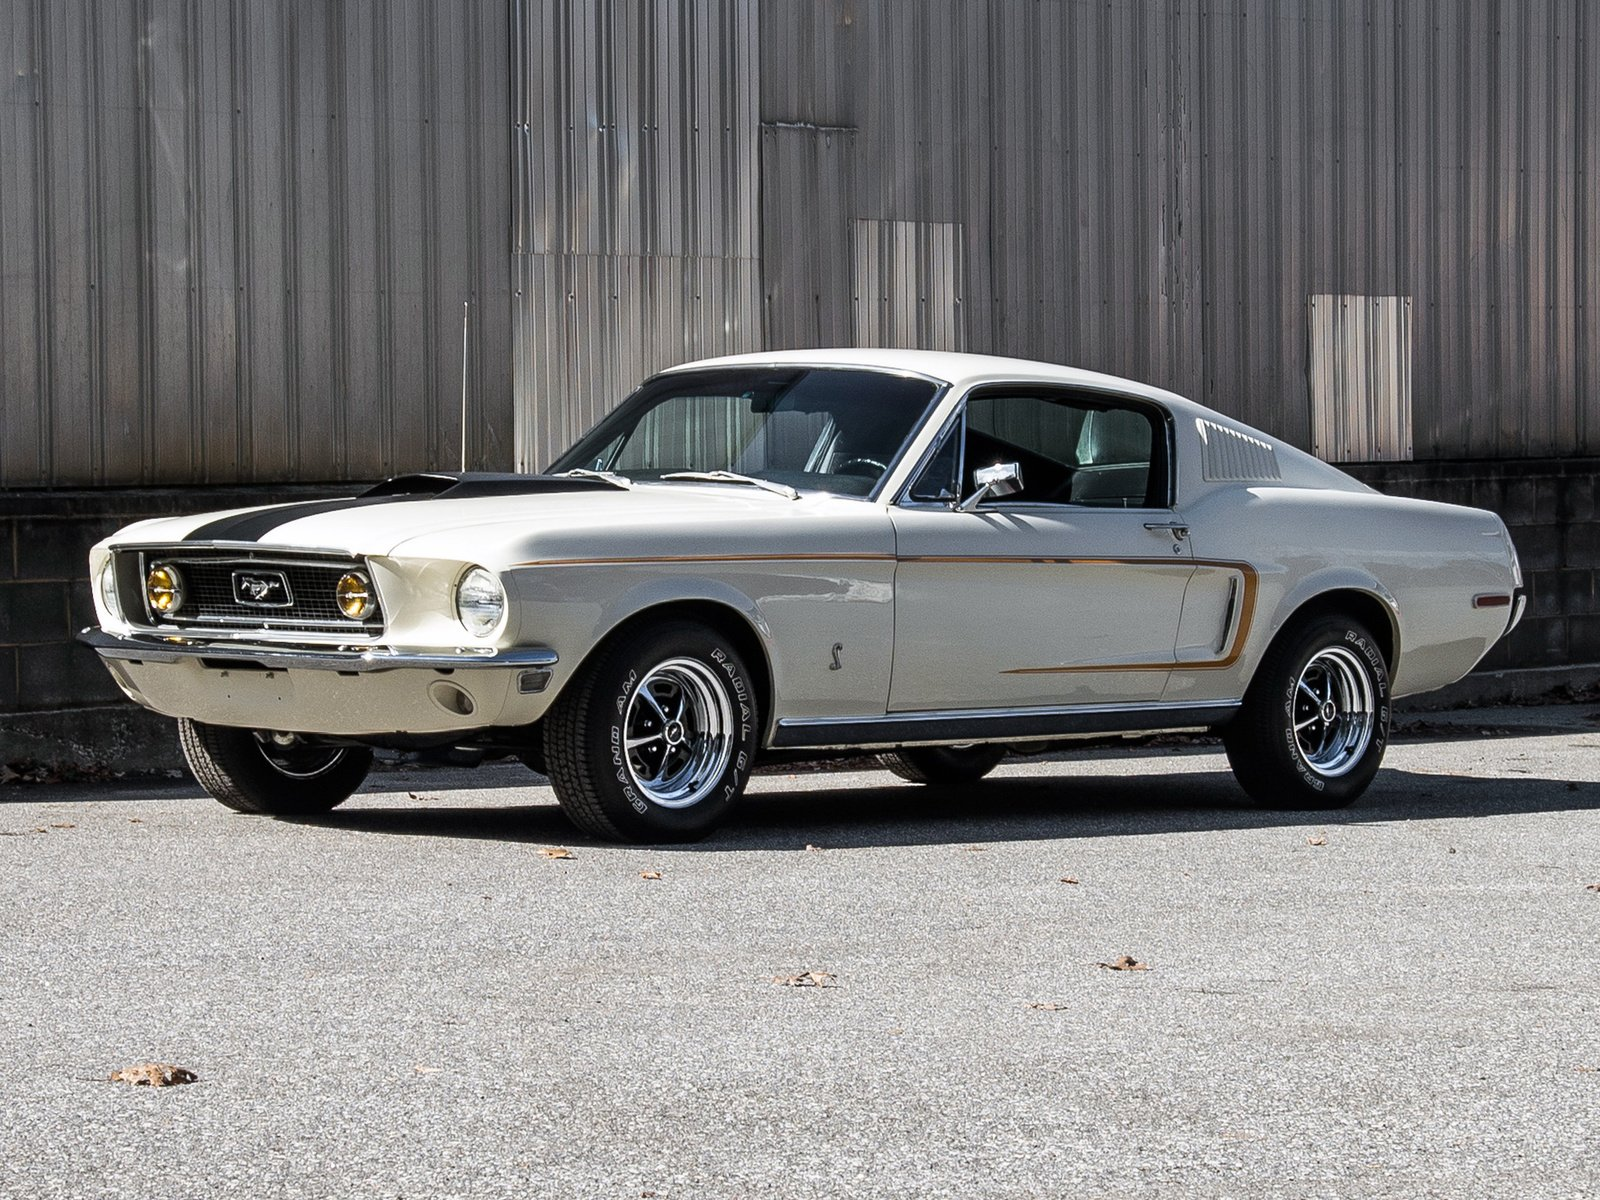 1968 ford mustang g t 428 cobra jet fastback muscle classic hf wallpaper 1600x1200 305299 wallpaperup